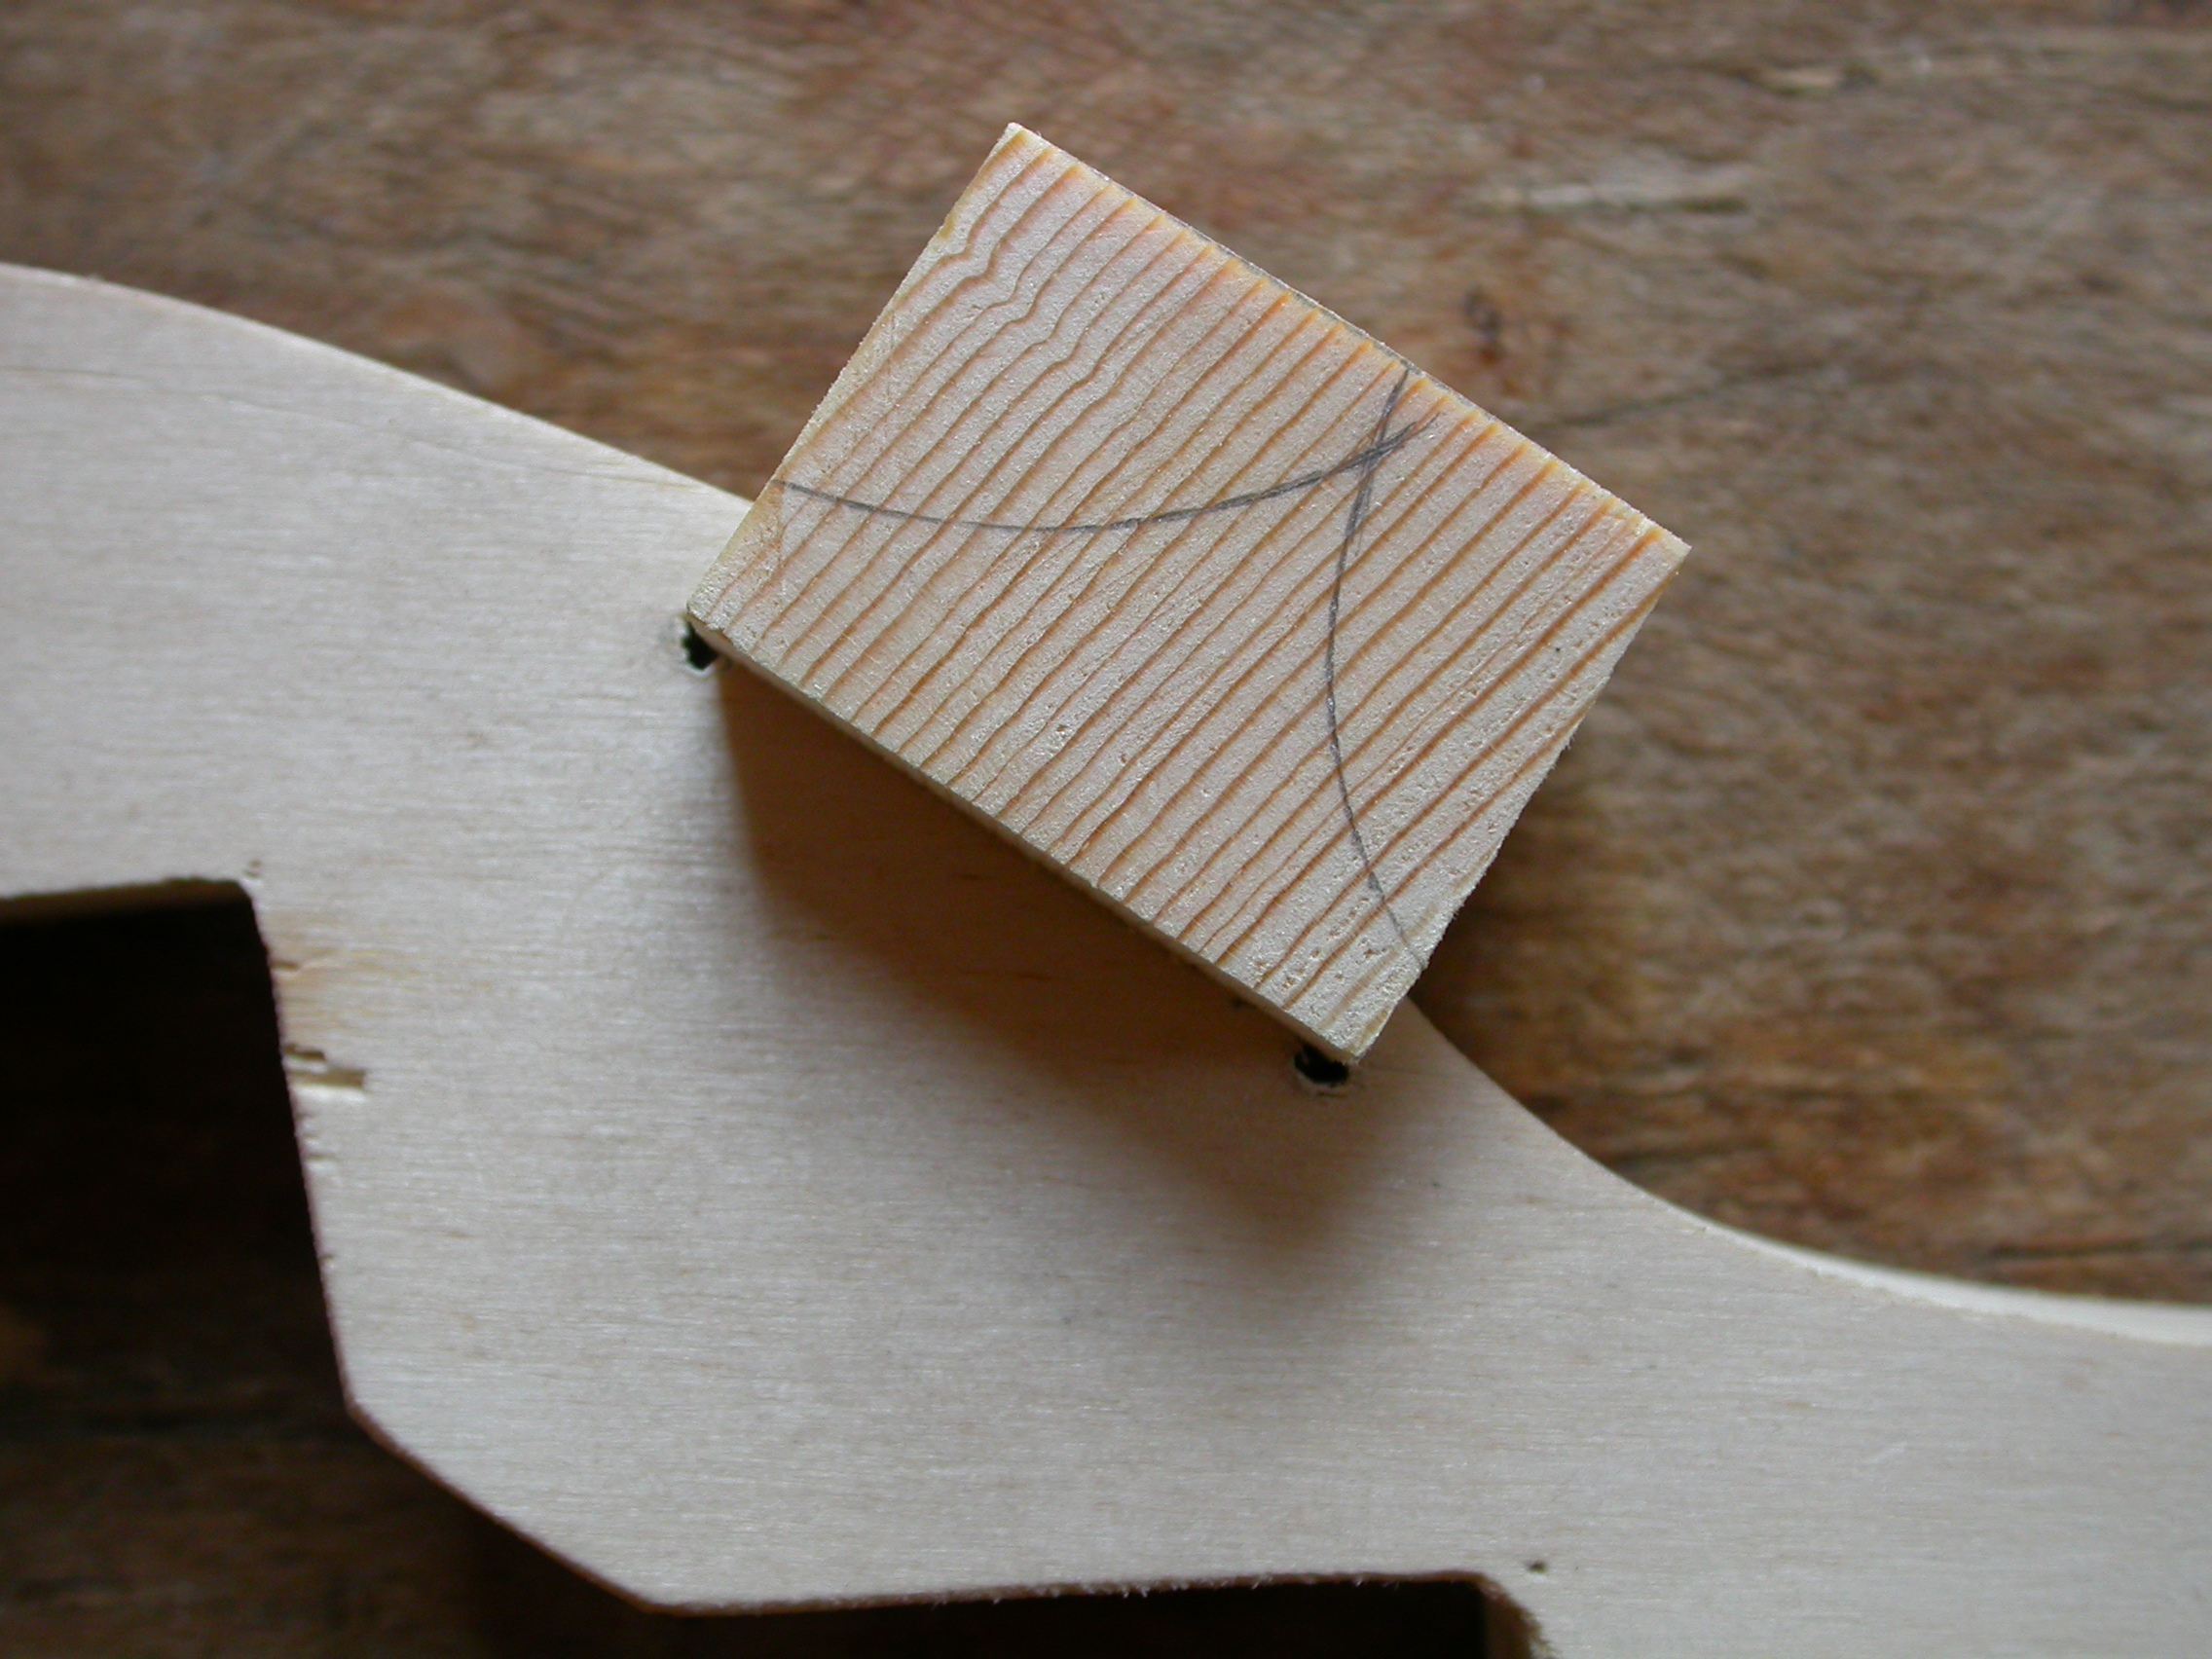 object fix objects wood instrument violin curve curves